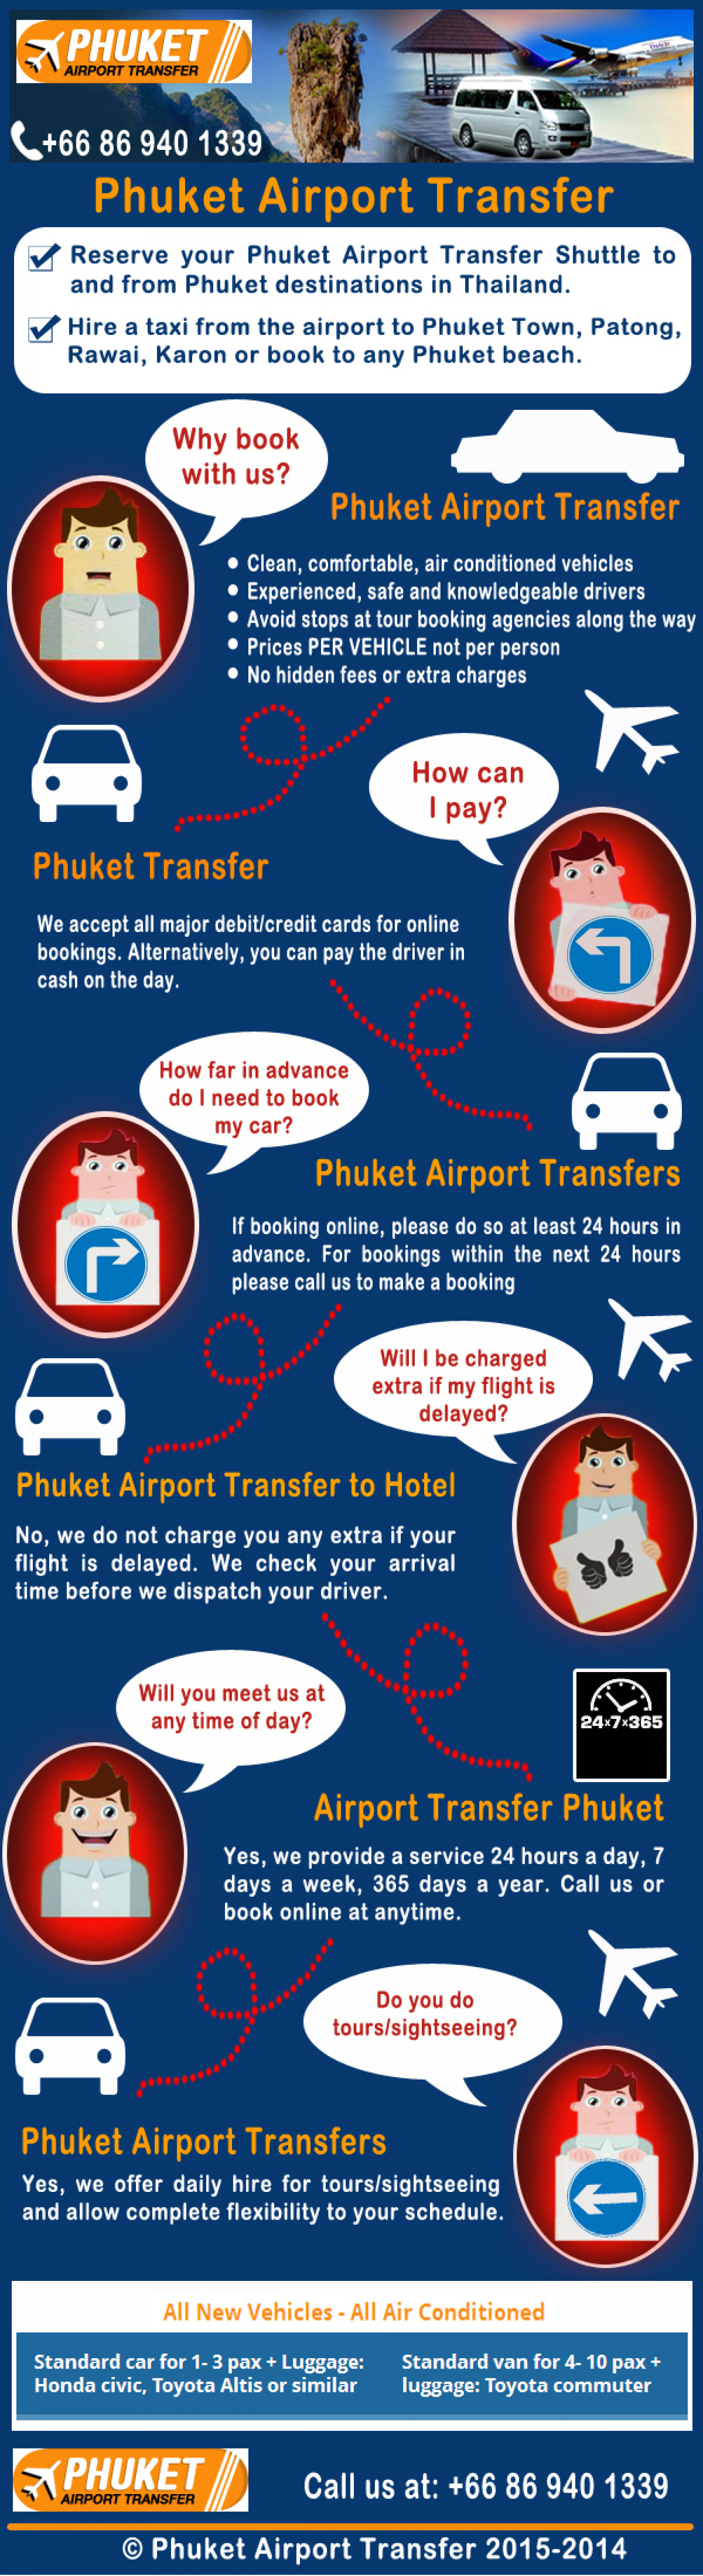 Phuket Airport Transfer Infographic